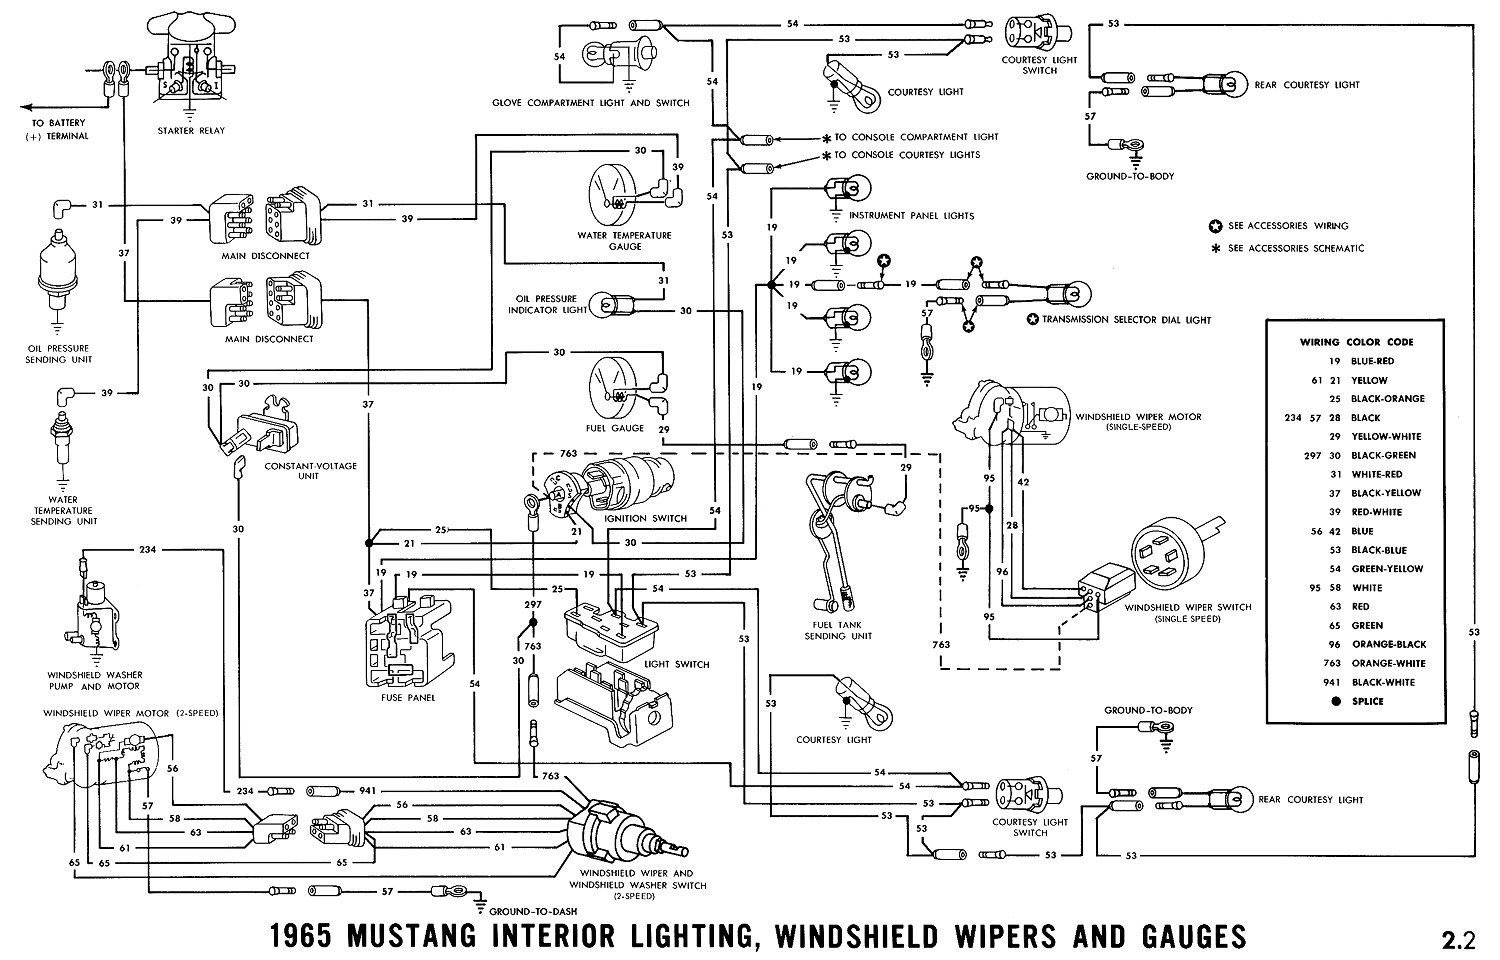 1965g 1965 mustang wiring diagram 1965 lincoln wiring diagram \u2022 wiring 1965 ford falcon wiring diagram at aneh.co